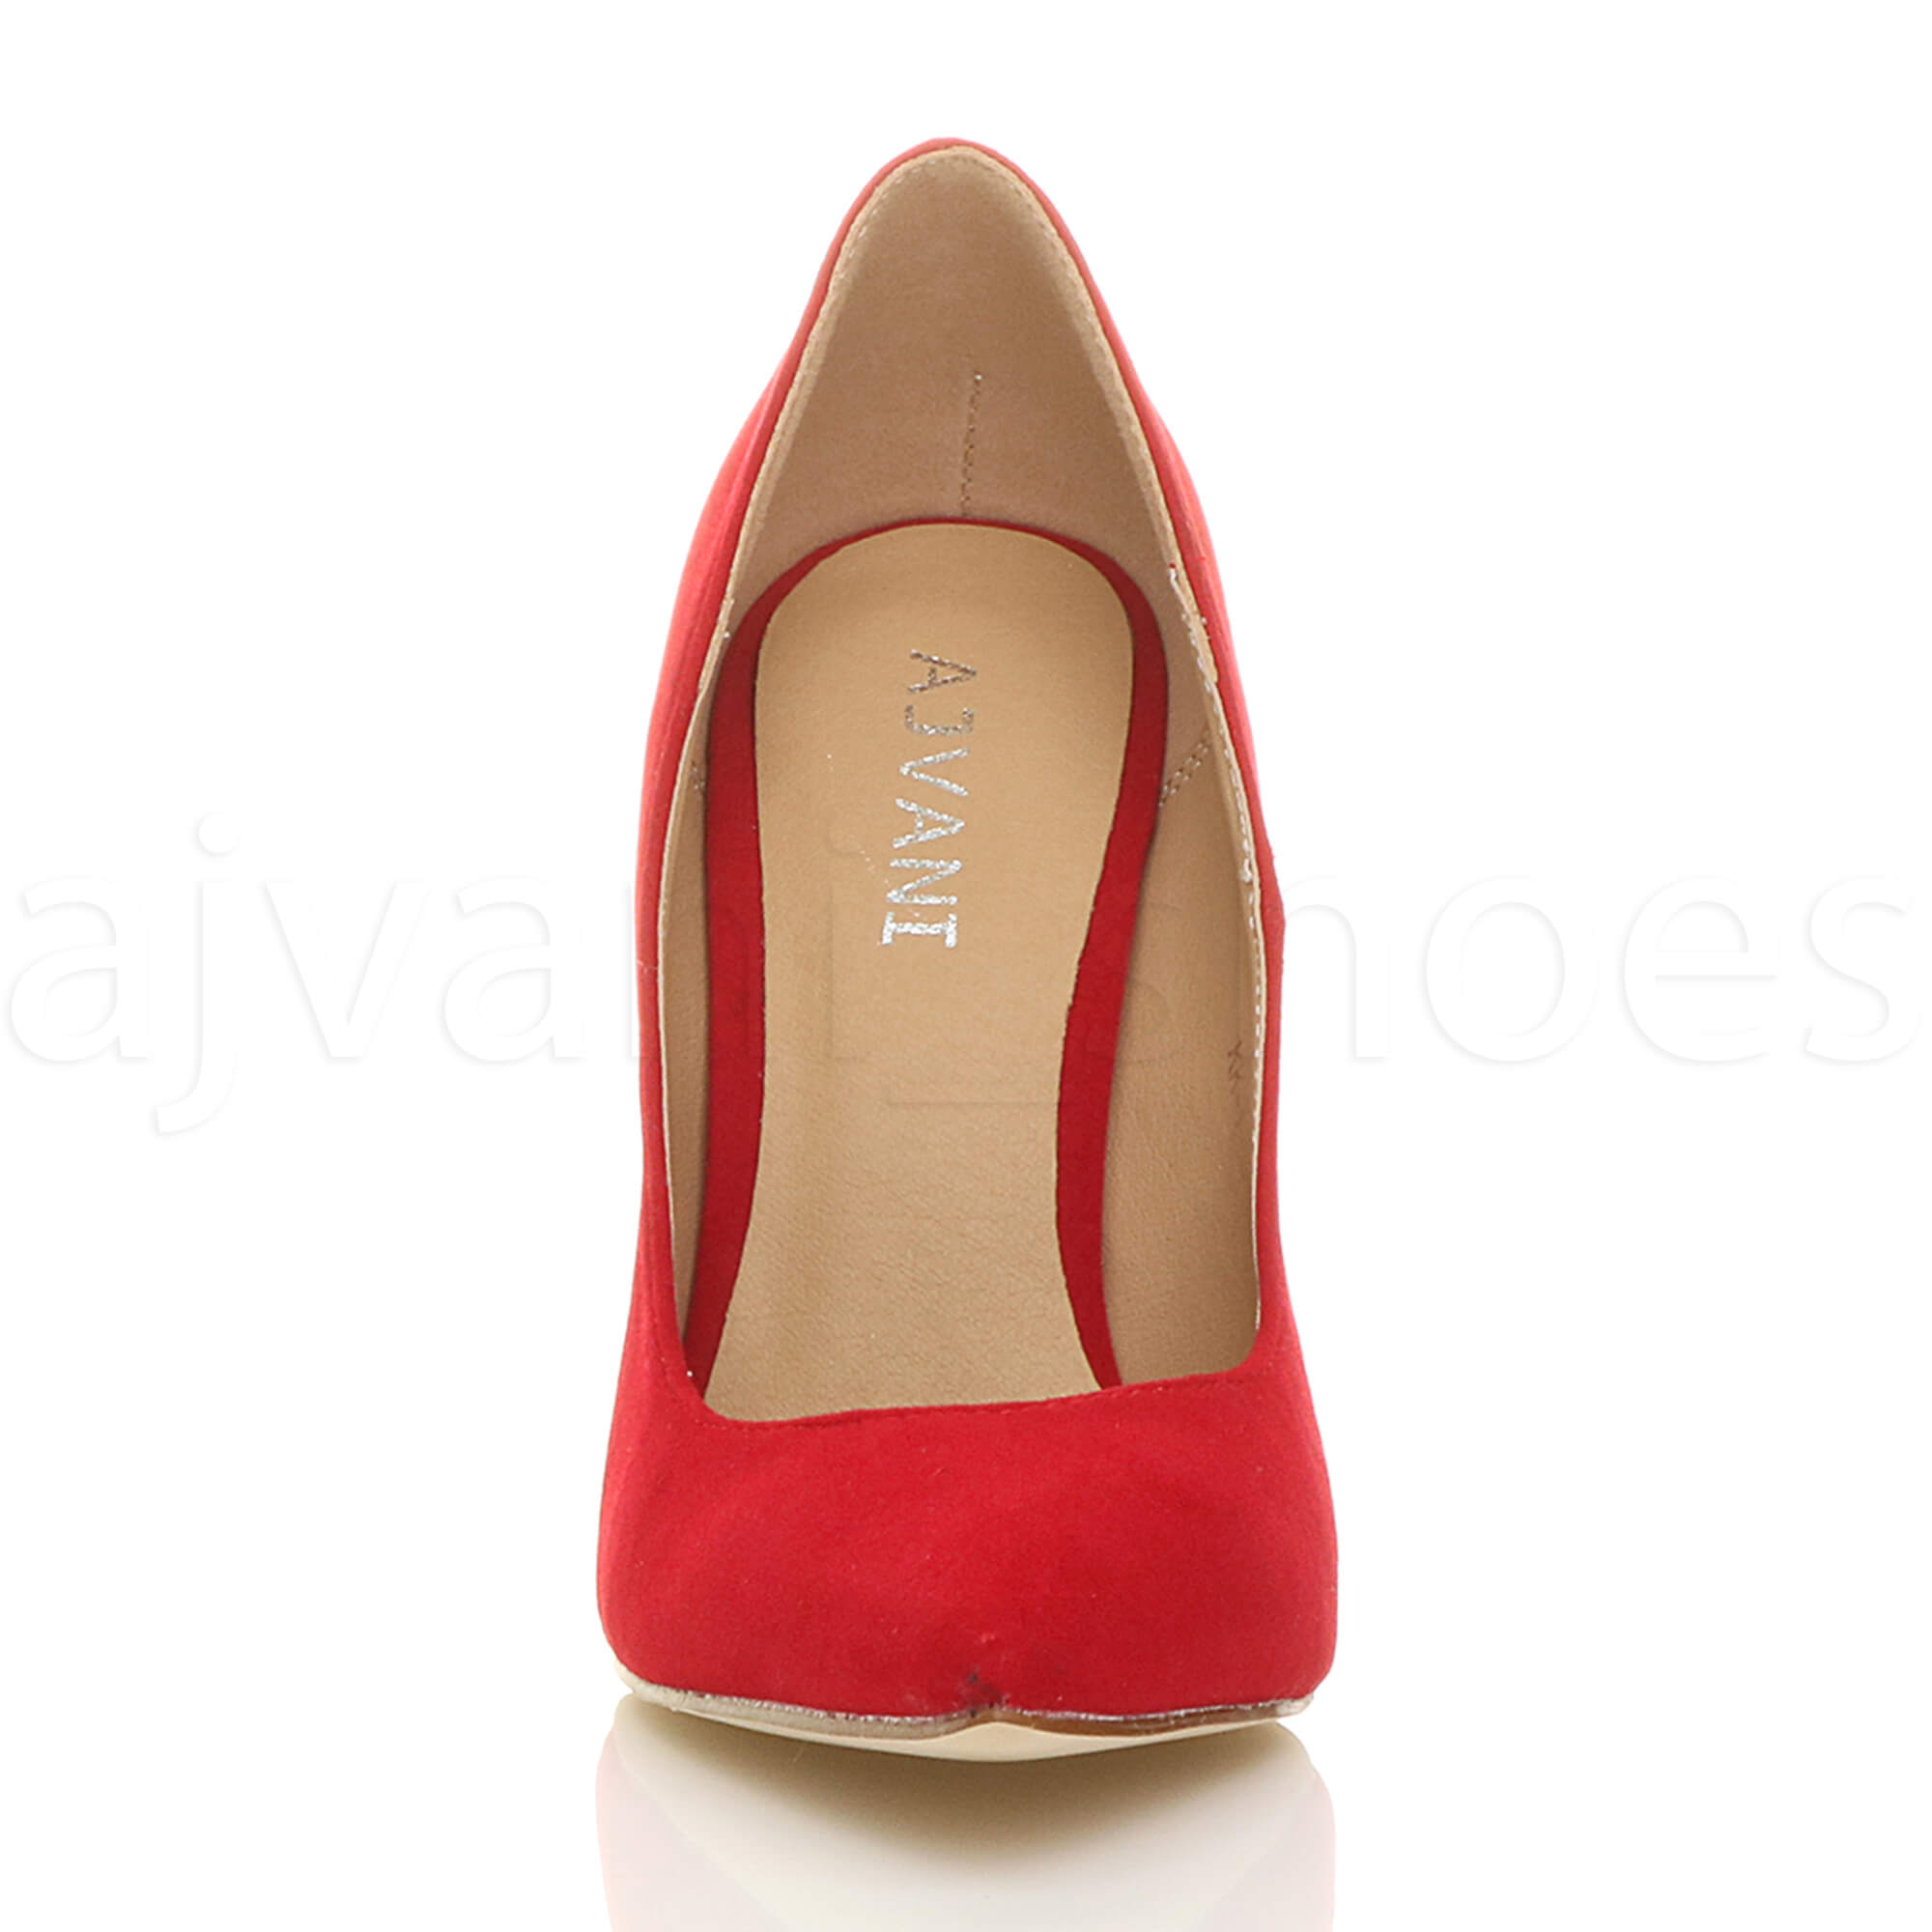 WOMENS-LADIES-HIGH-HEEL-POINTED-CONTRAST-COURT-SMART-PARTY-WORK-SHOES-PUMPS-SIZE thumbnail 173